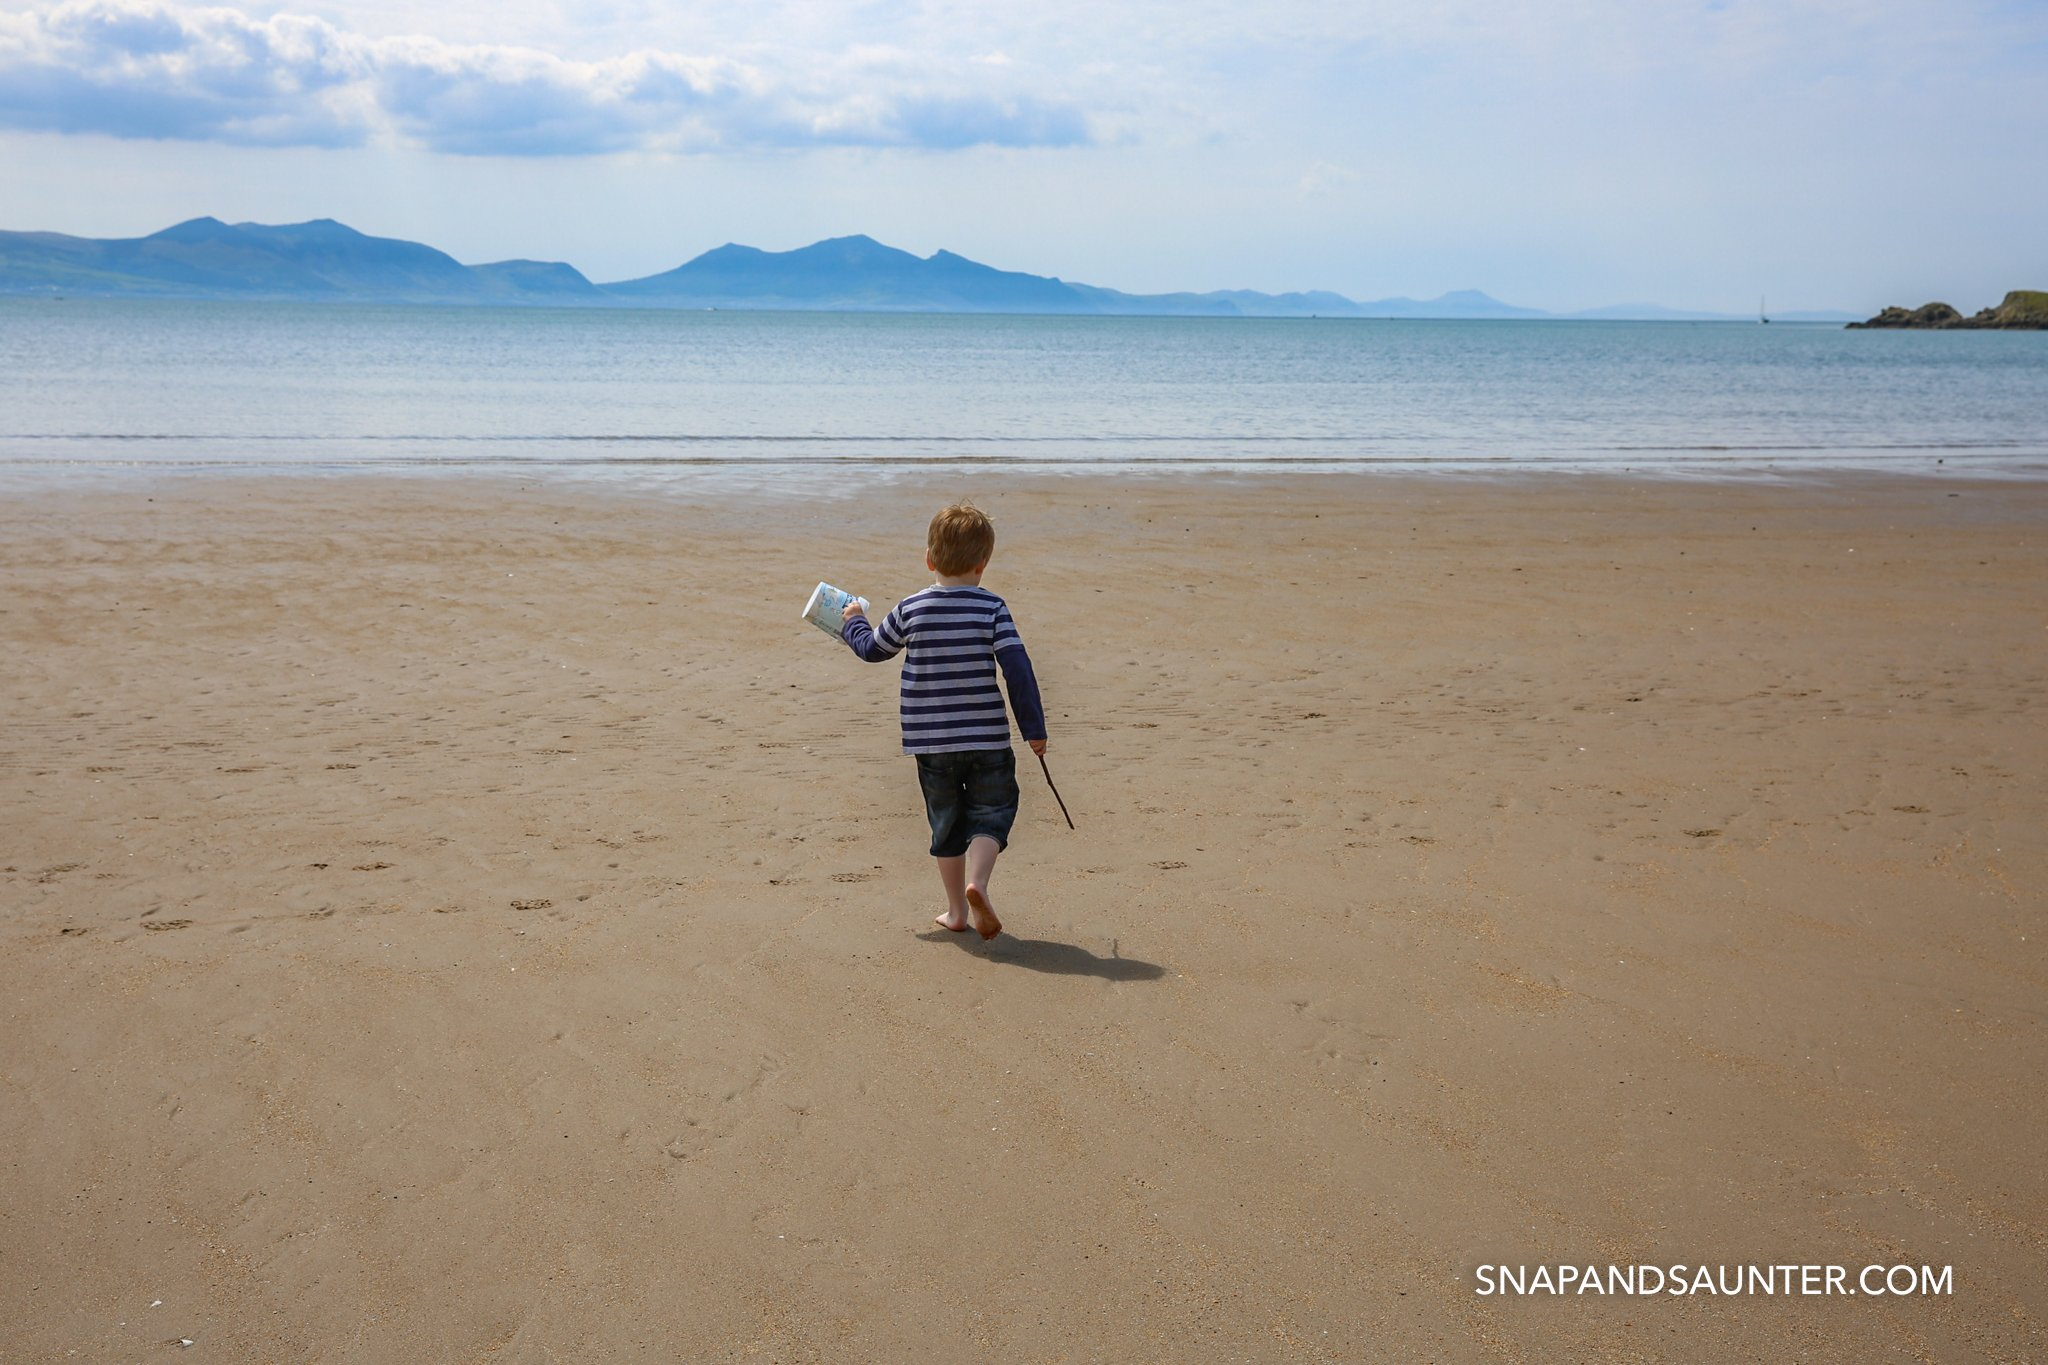 A child running on the beach with bucket and stick